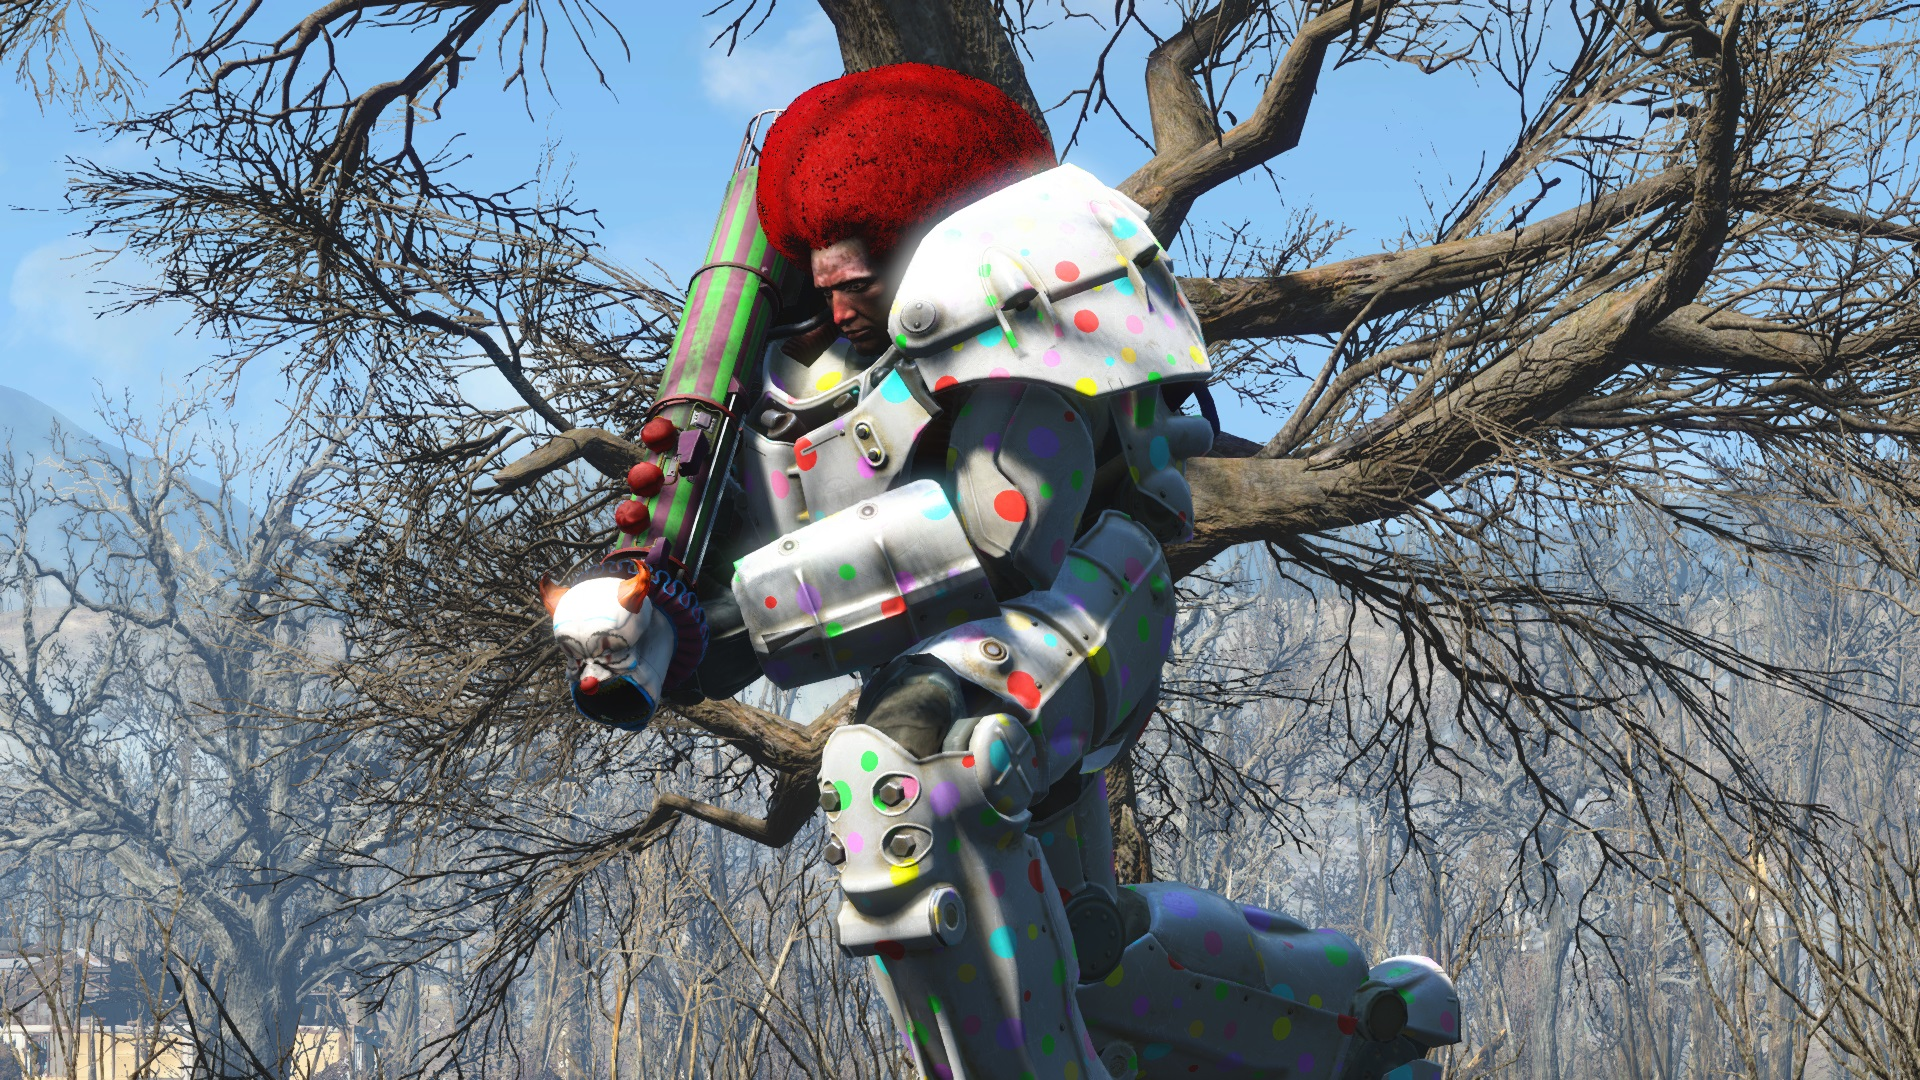 Clown Power Armor image - Maxwell's World mod for Fallout 4